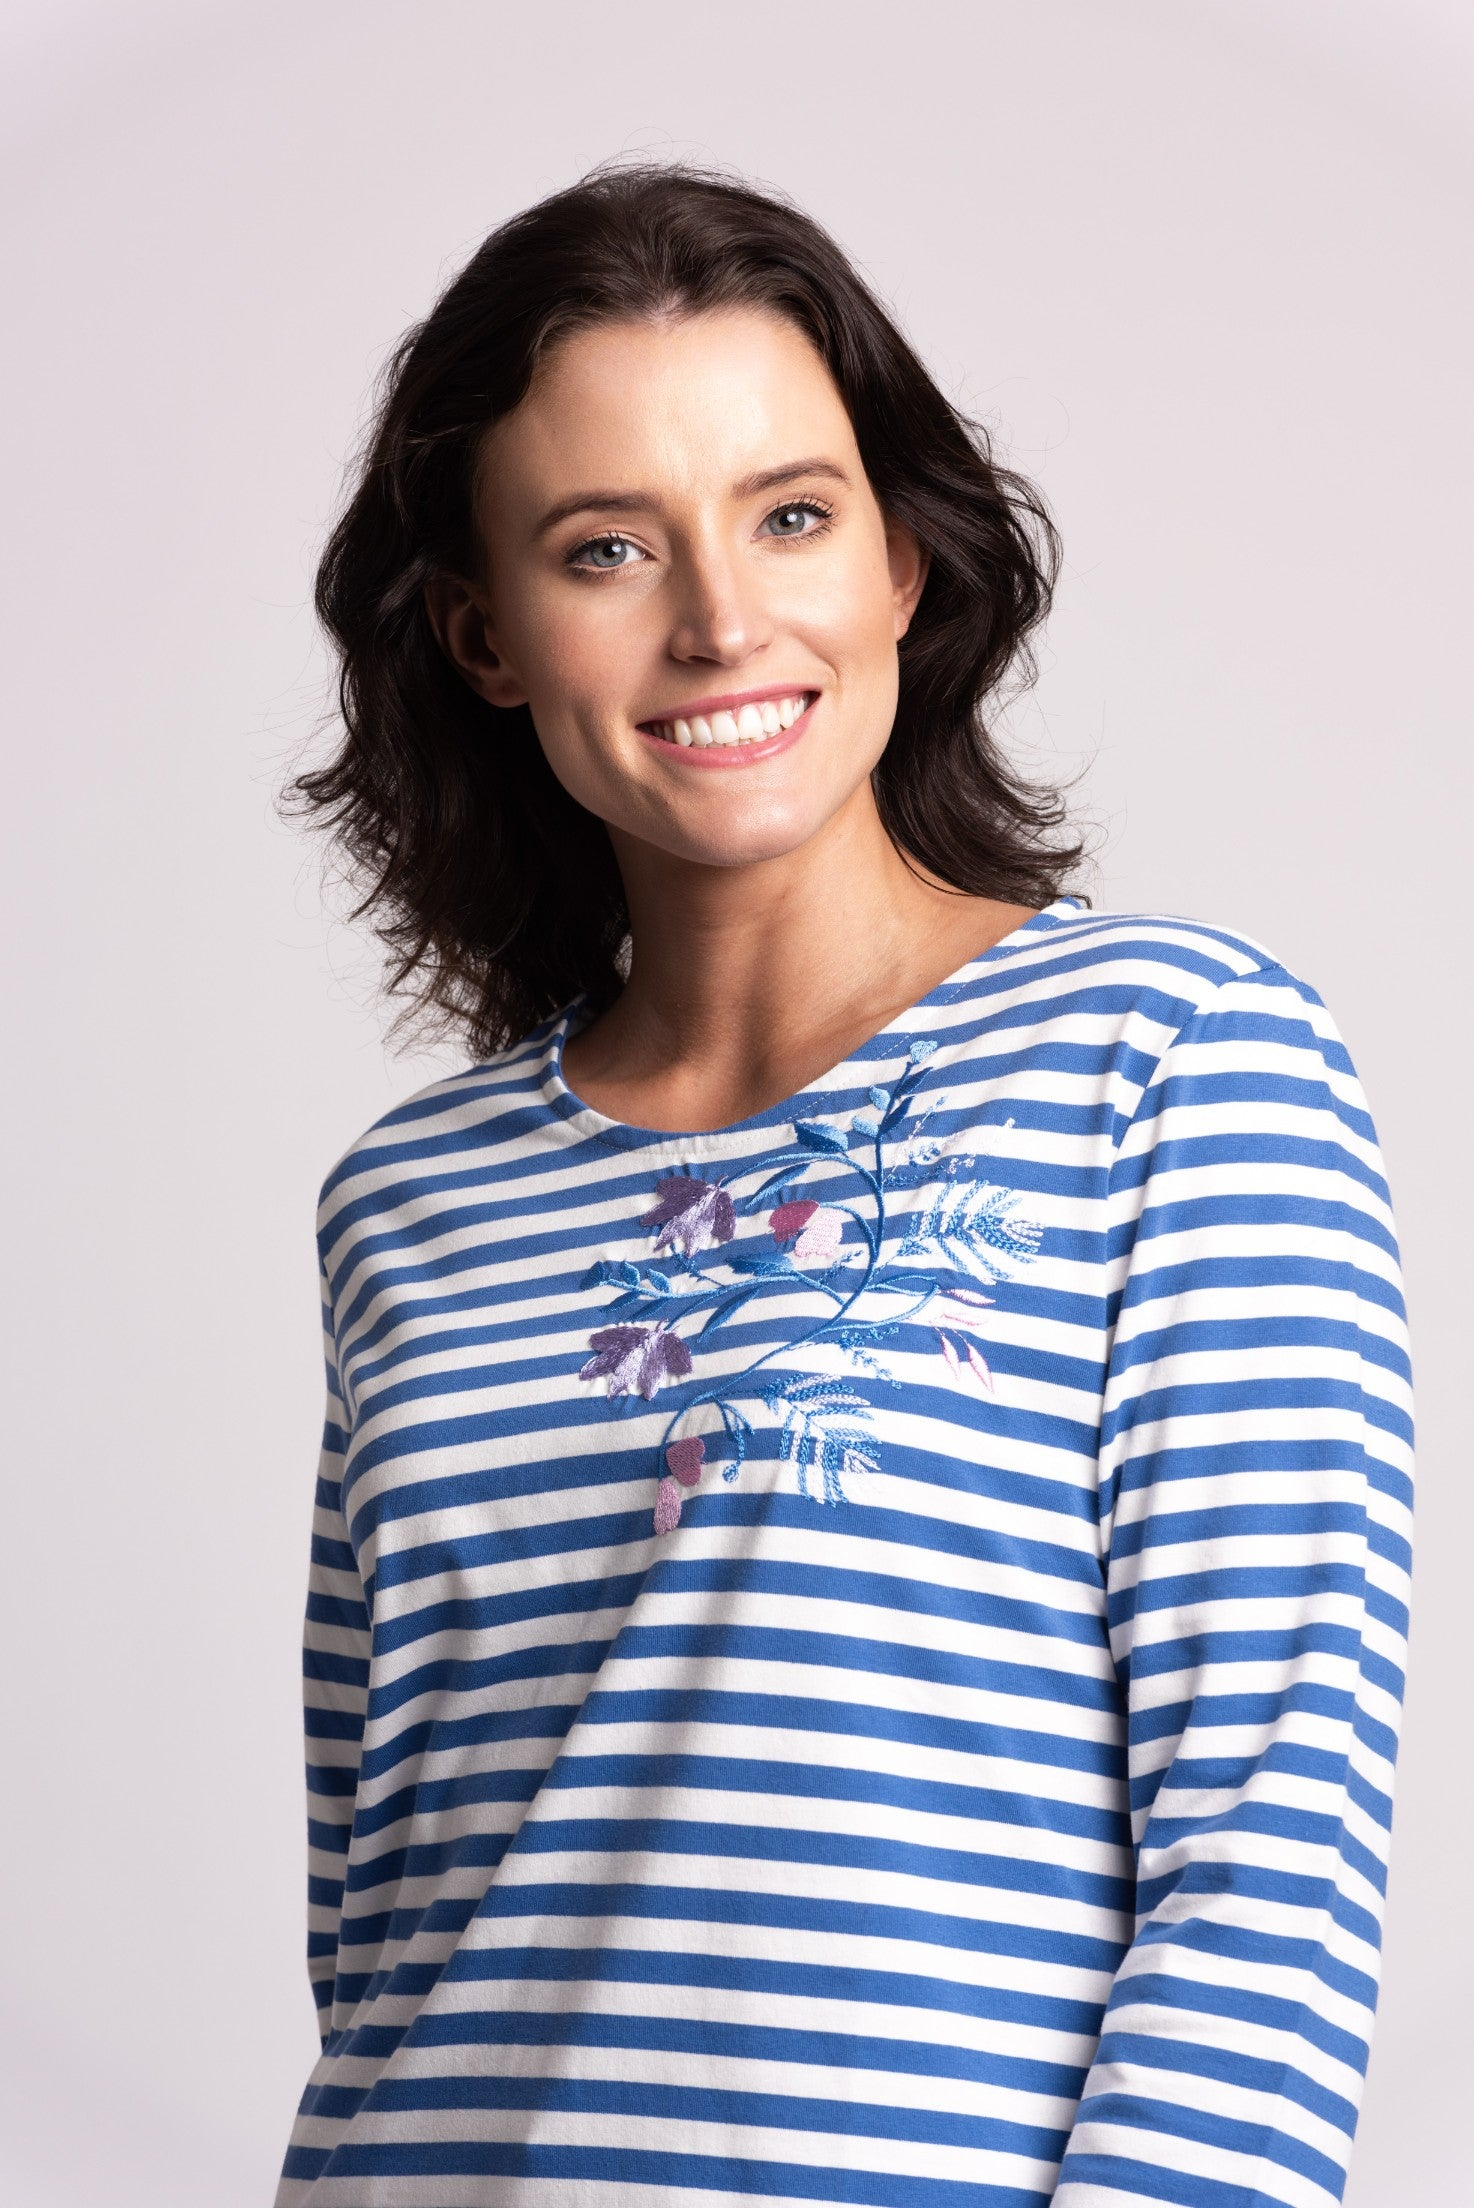 Stripe Top With Embroidery